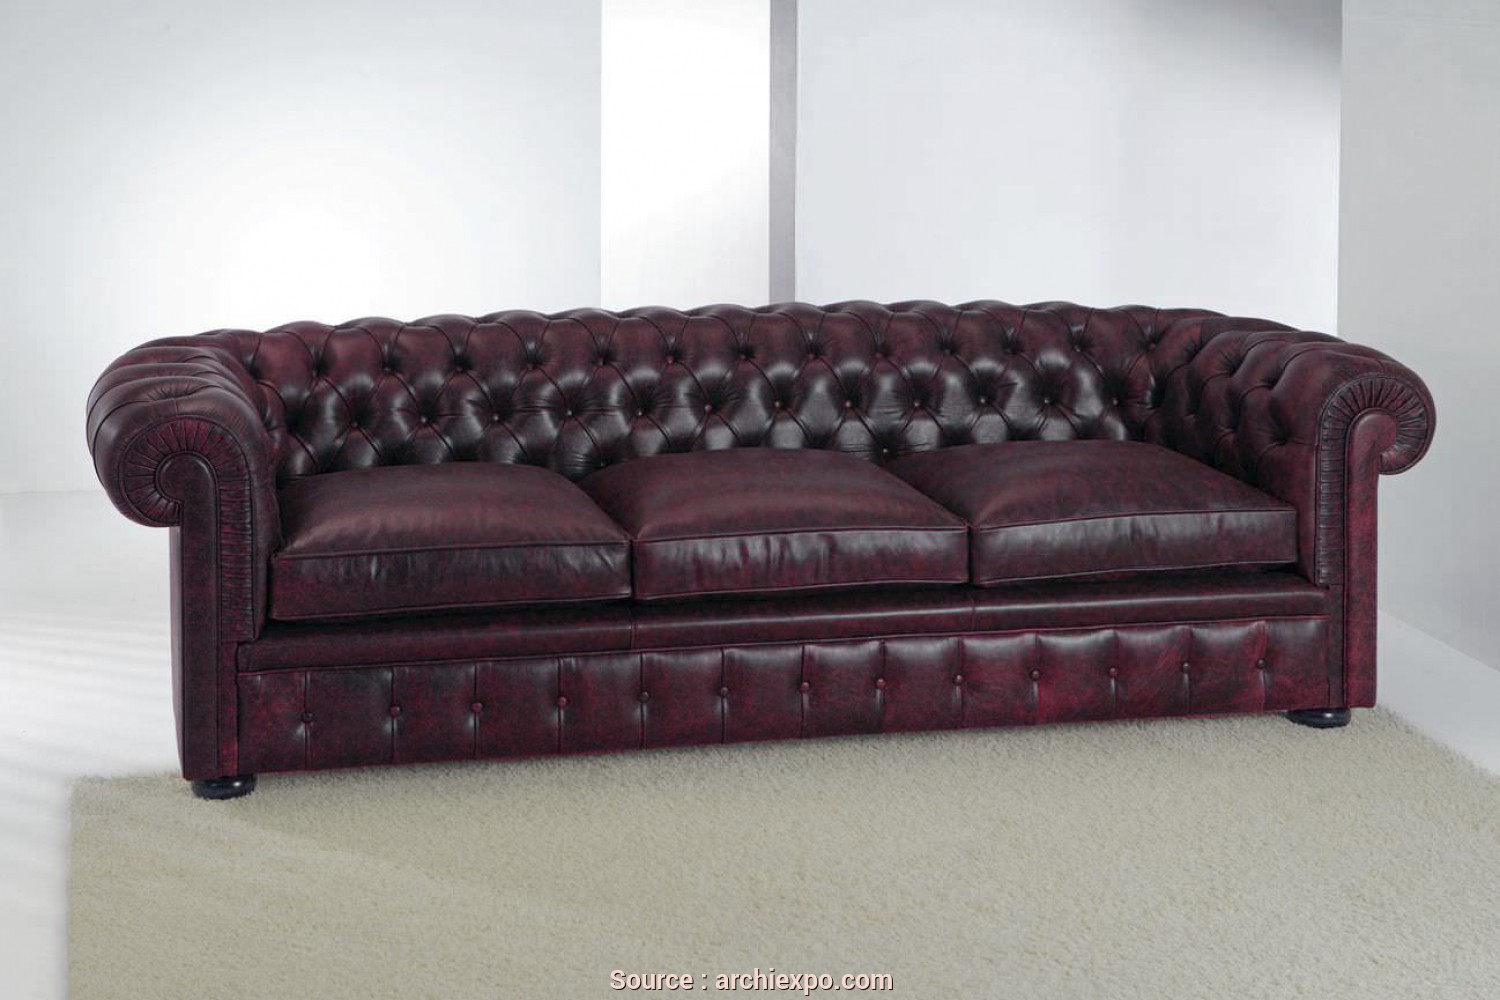 Divano Chester Crazy, Deale Chesterfield Sofa / Leather / 3-Seater / Violet, CHESTERFIELD CLASSIC